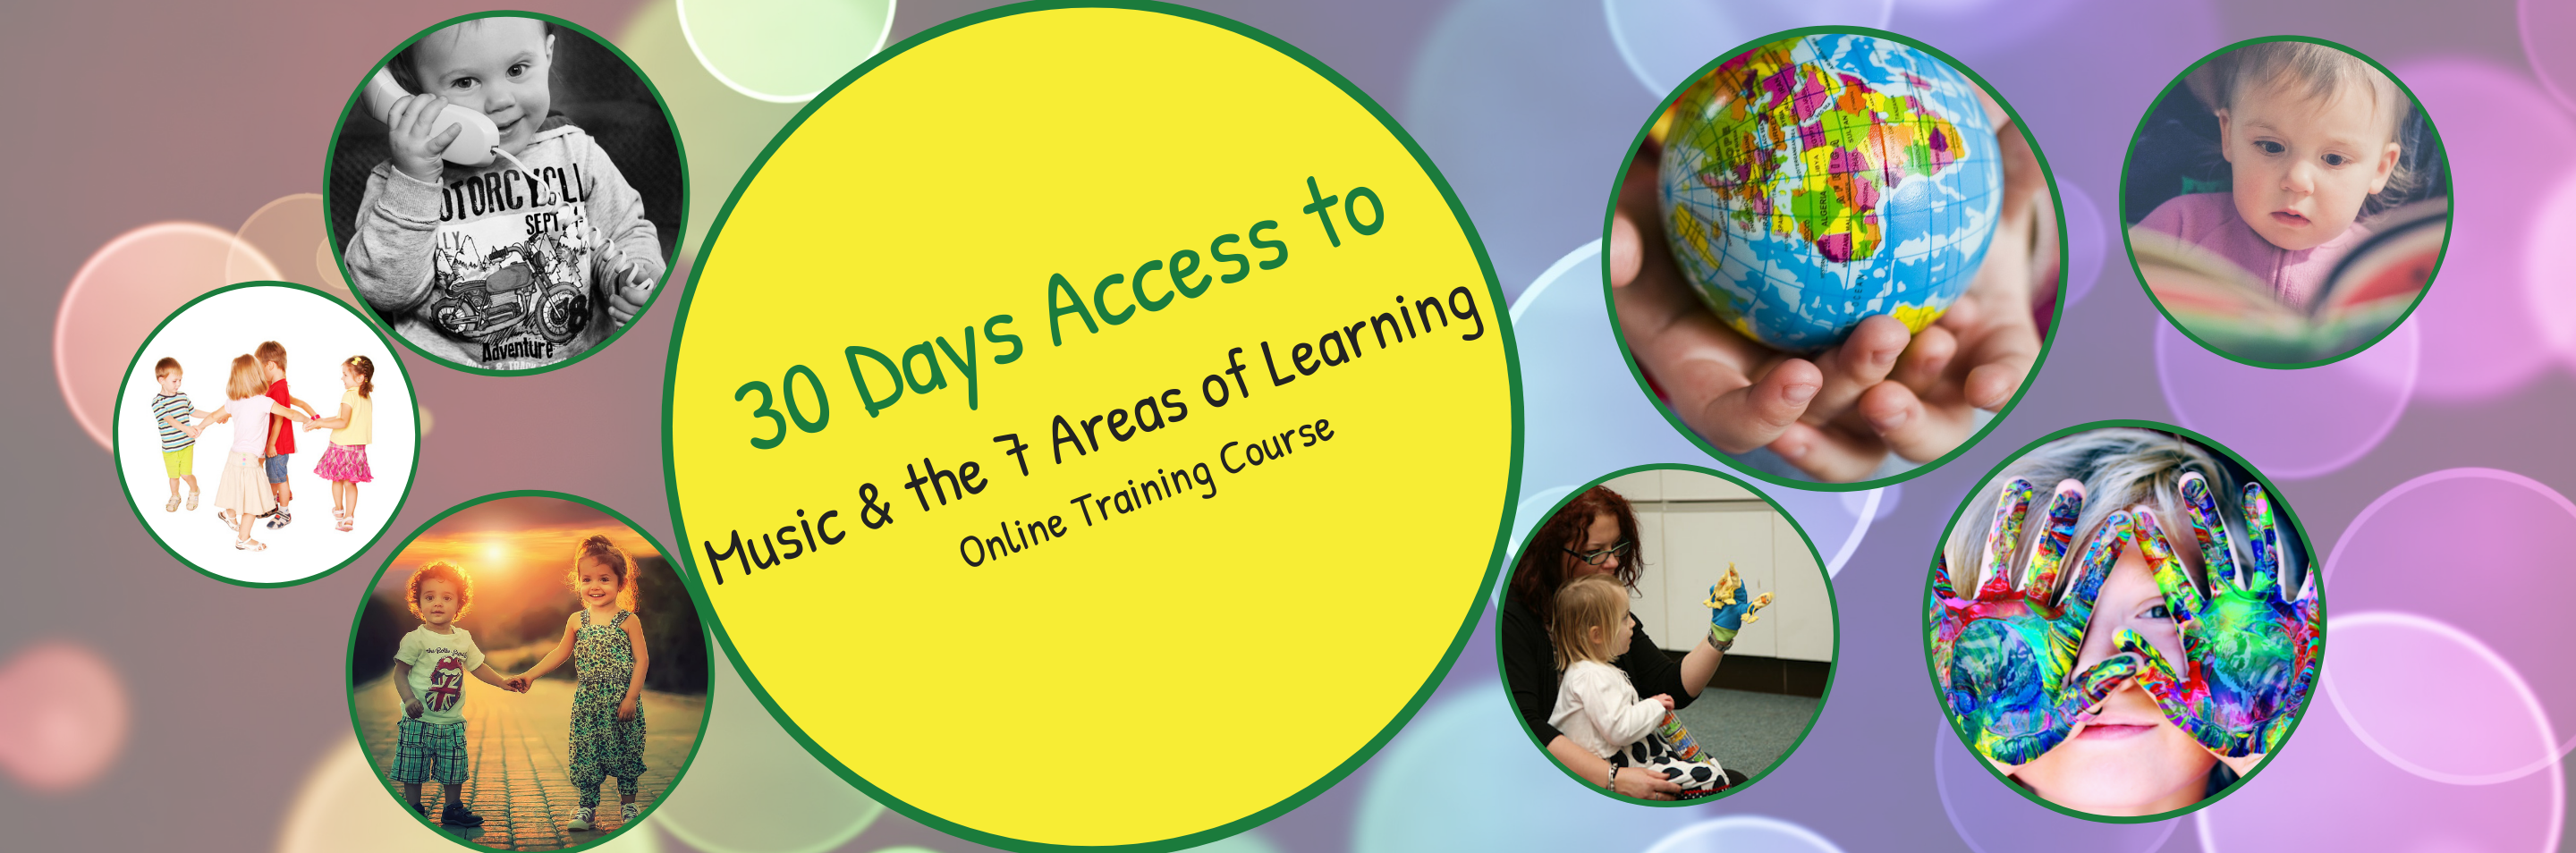 Header 30 Days Access to Music & the 7 Areas of Learning